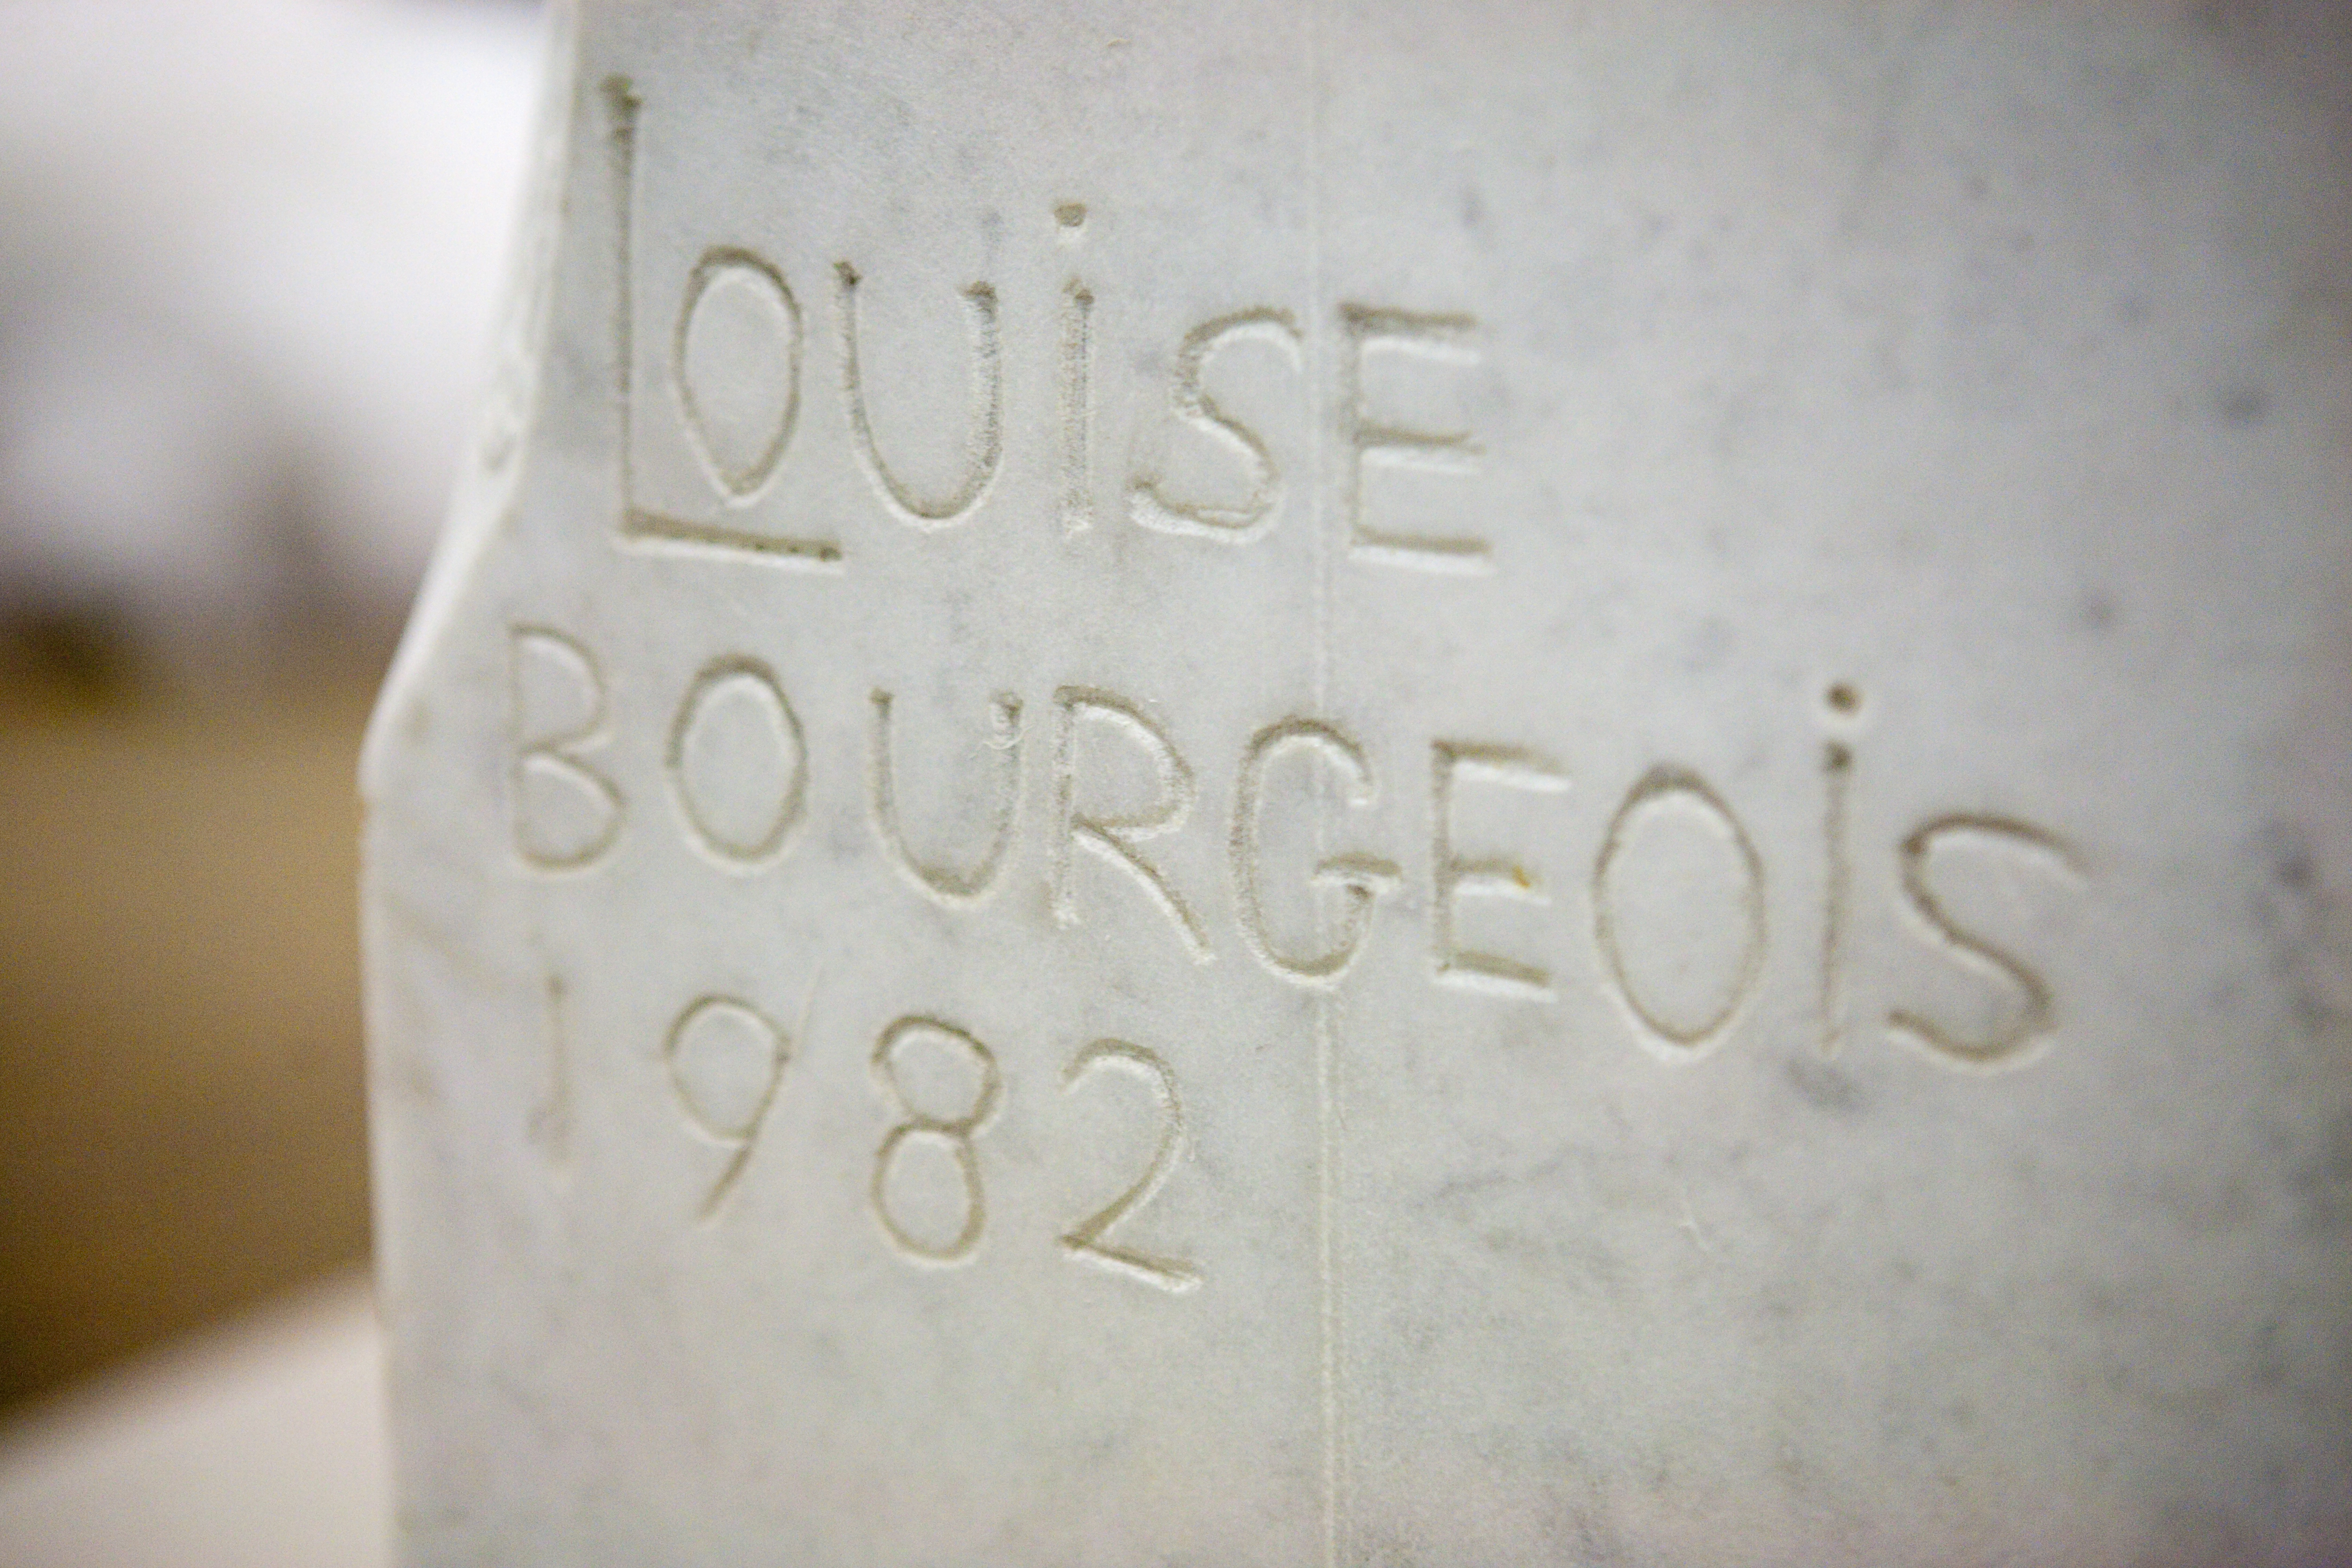 A detail of Louise Bourgeois' sculpture